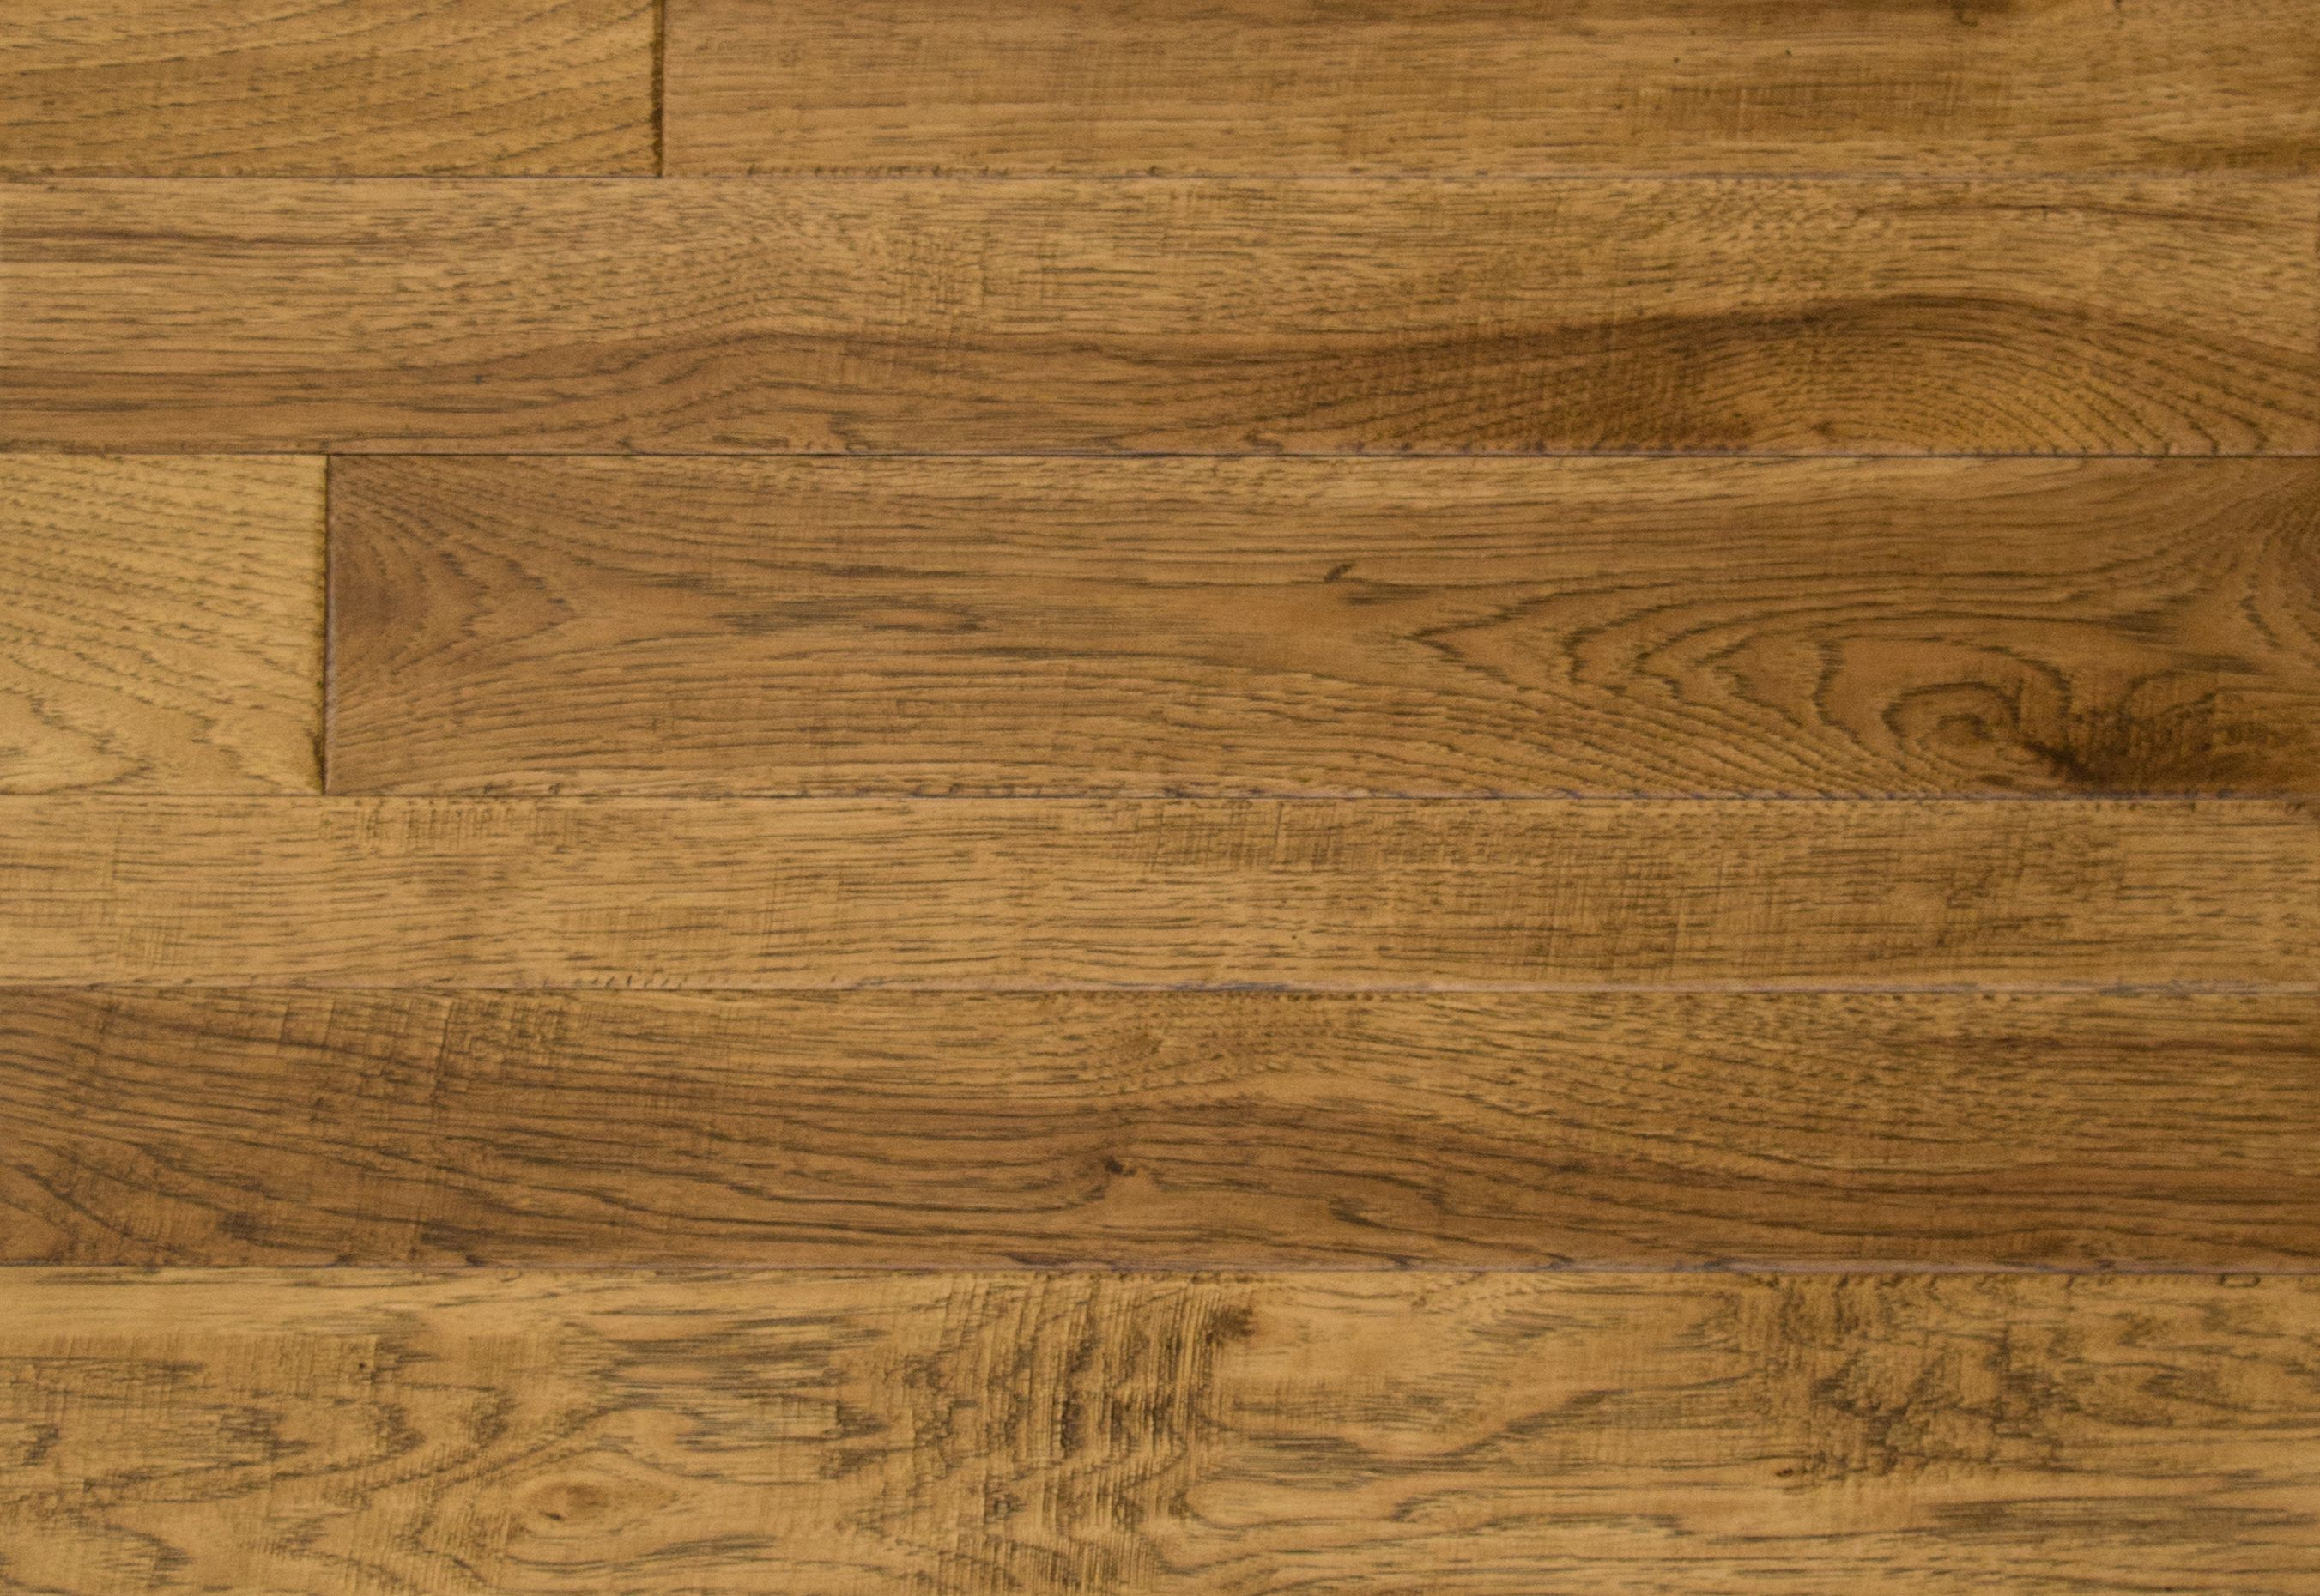 Pre Finished Hardwood Floor Installation Services In Kansas City By SVB Wood  Floors. If Your Home Or Business Needs A New Wood Floor, Call SVB Today!